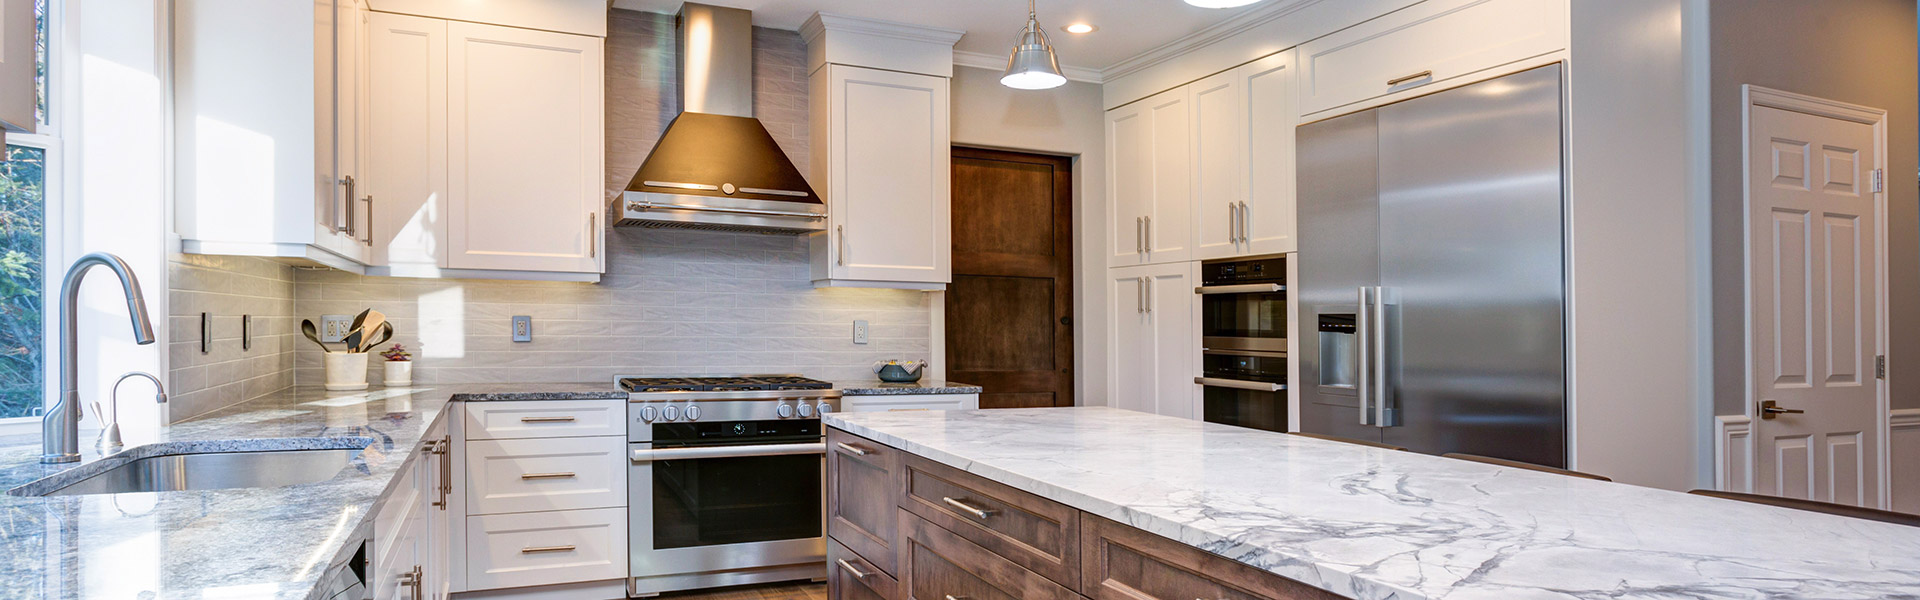 white kitchen with dark island and marble counters